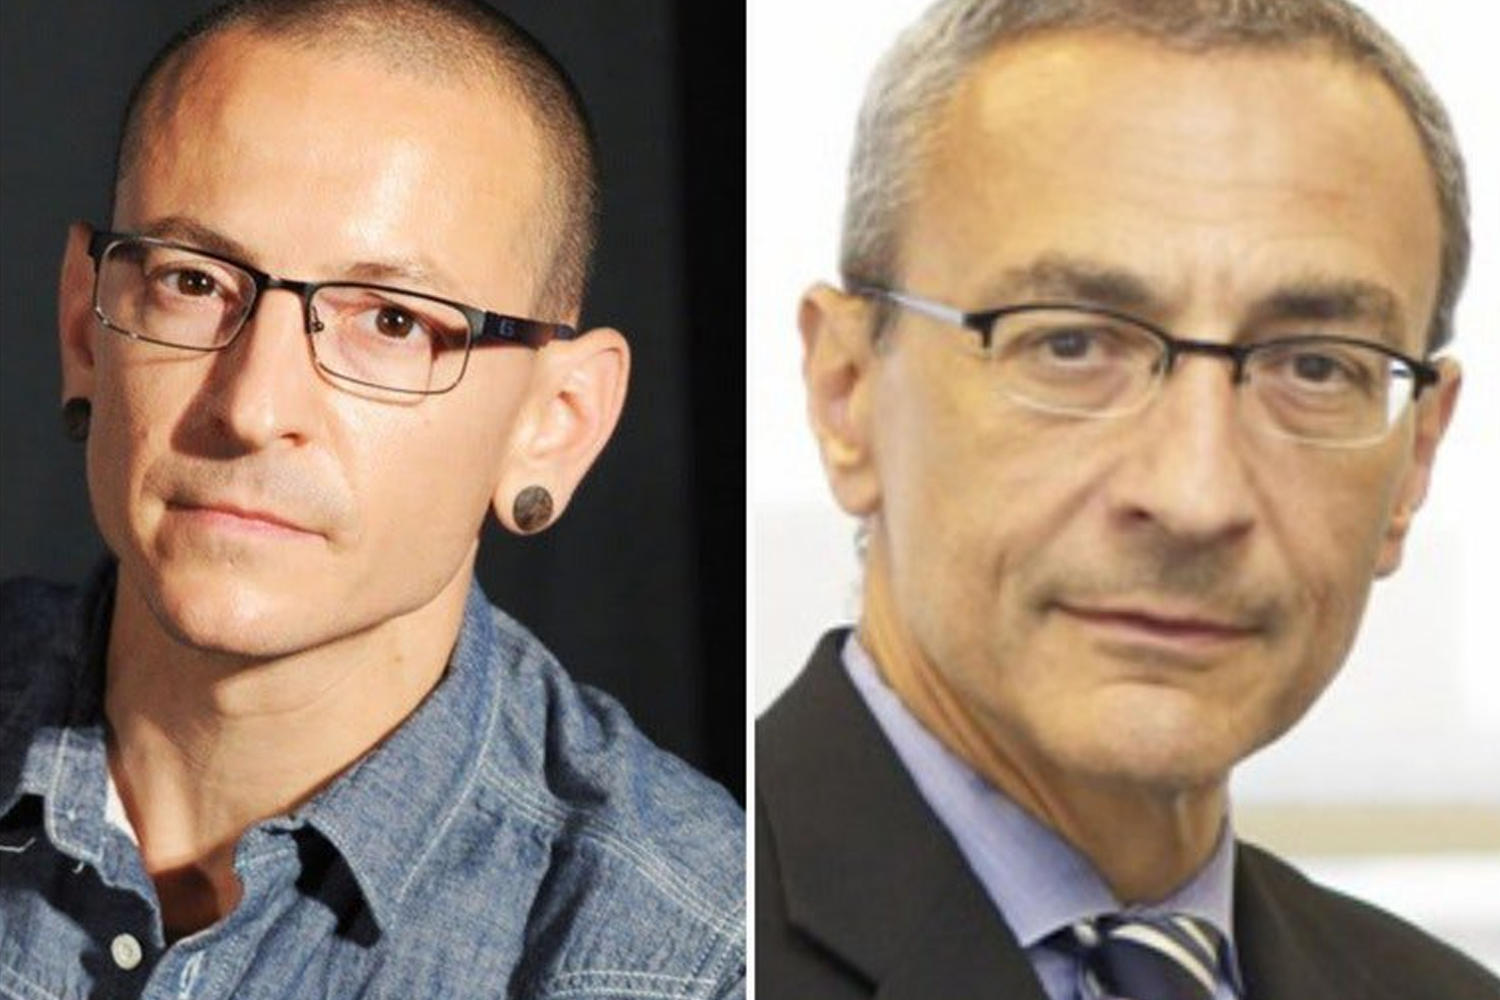 Is John Podesta the biological Father of Chester Bennington?